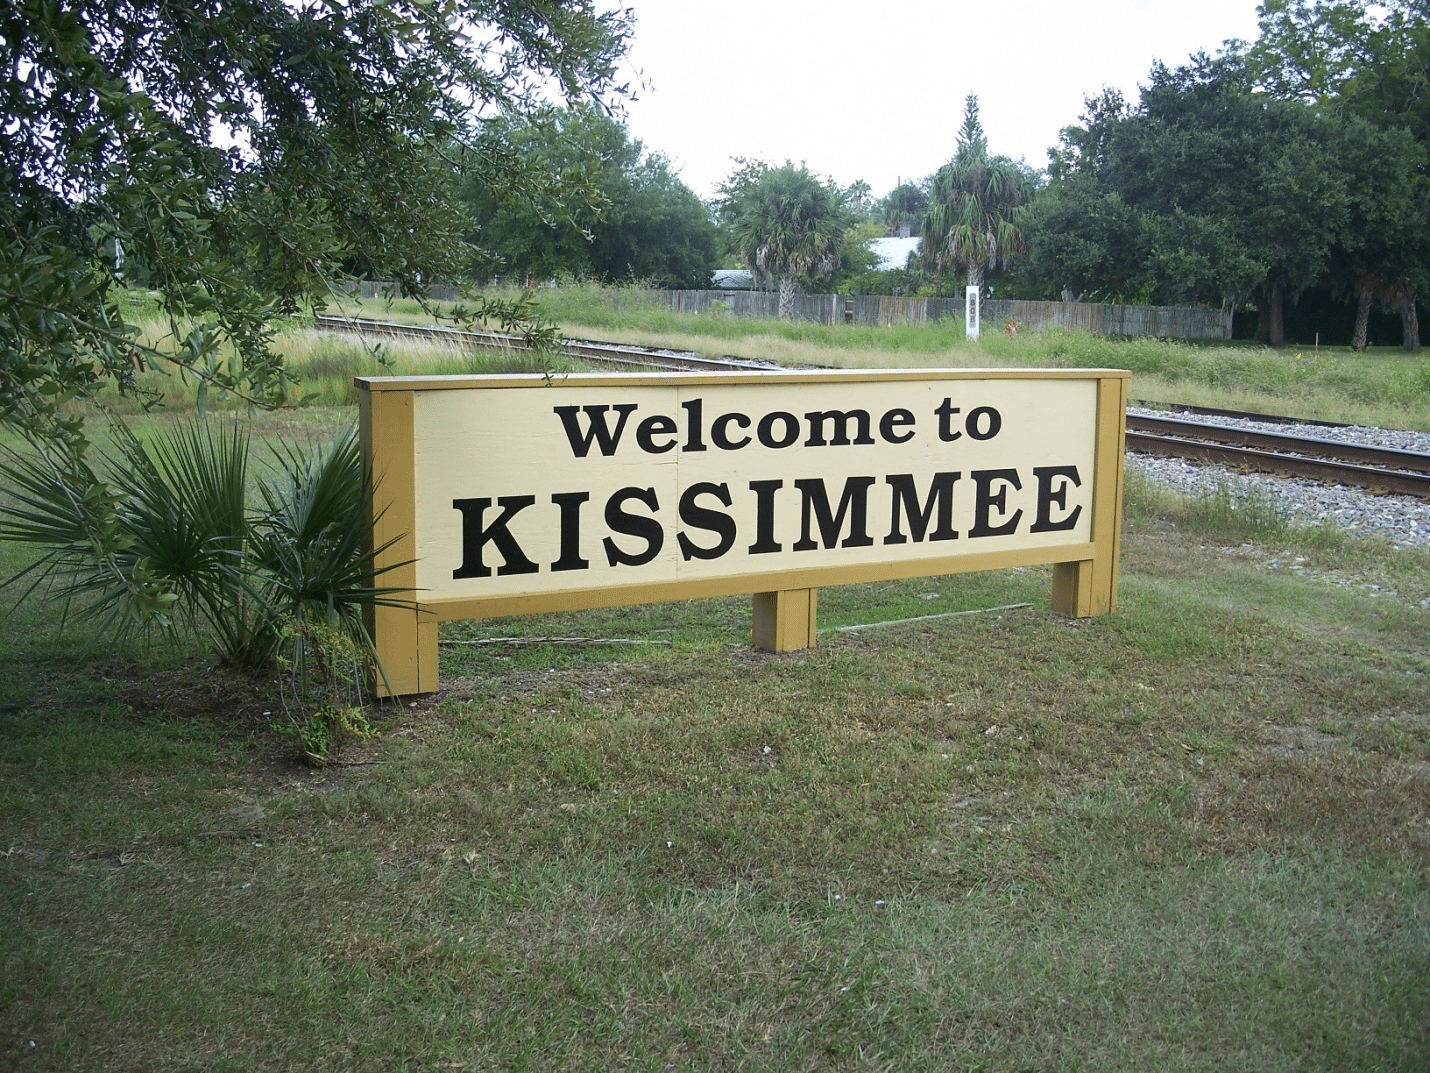 Things to Do in the City of Kissimmee, Florida